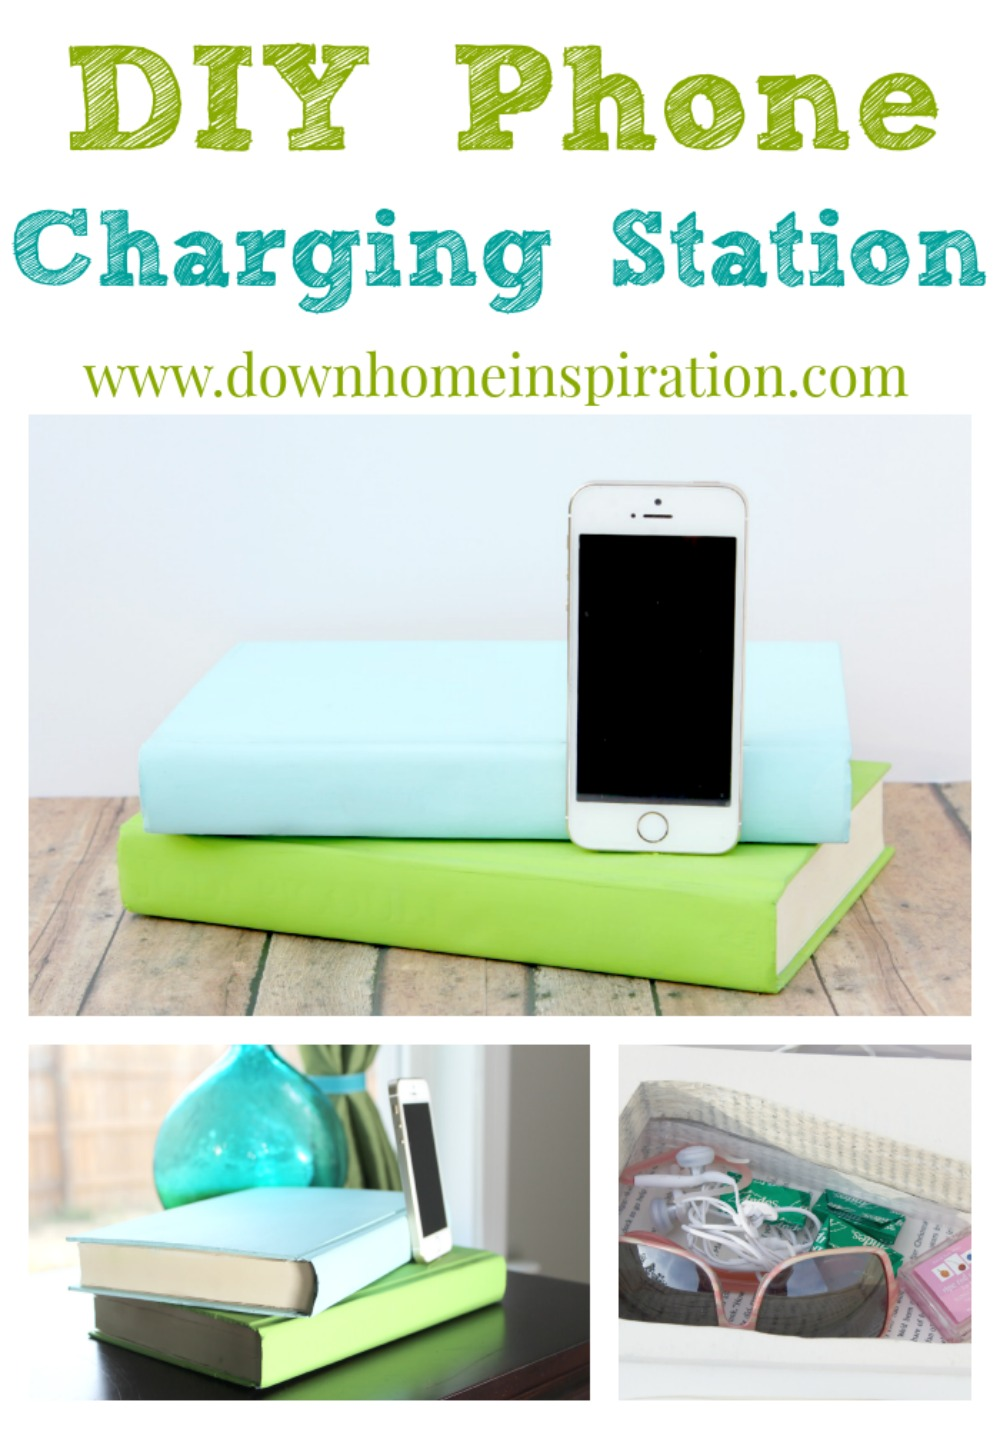 Diy Phone Charging Station Disguised As Books Down Home